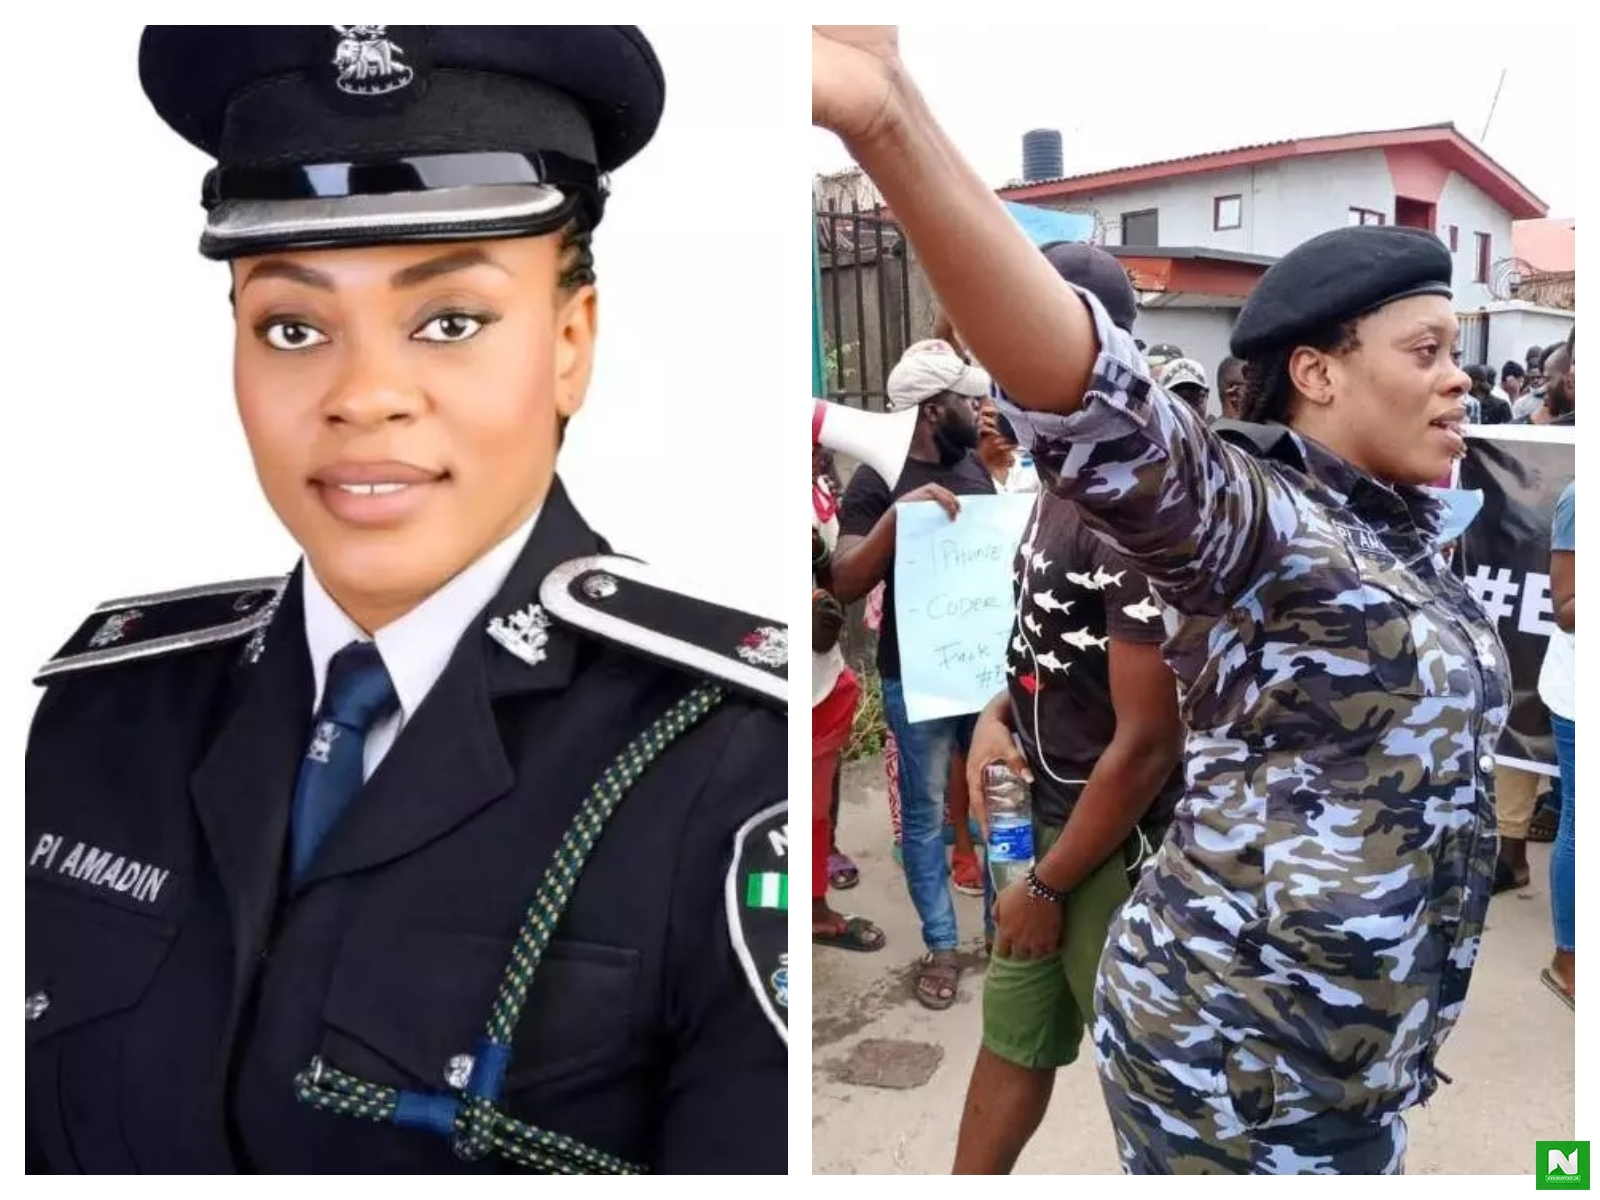 Check Out Beautiful Photos Of The DPO Who Provided Security And Moral Support For Protesters